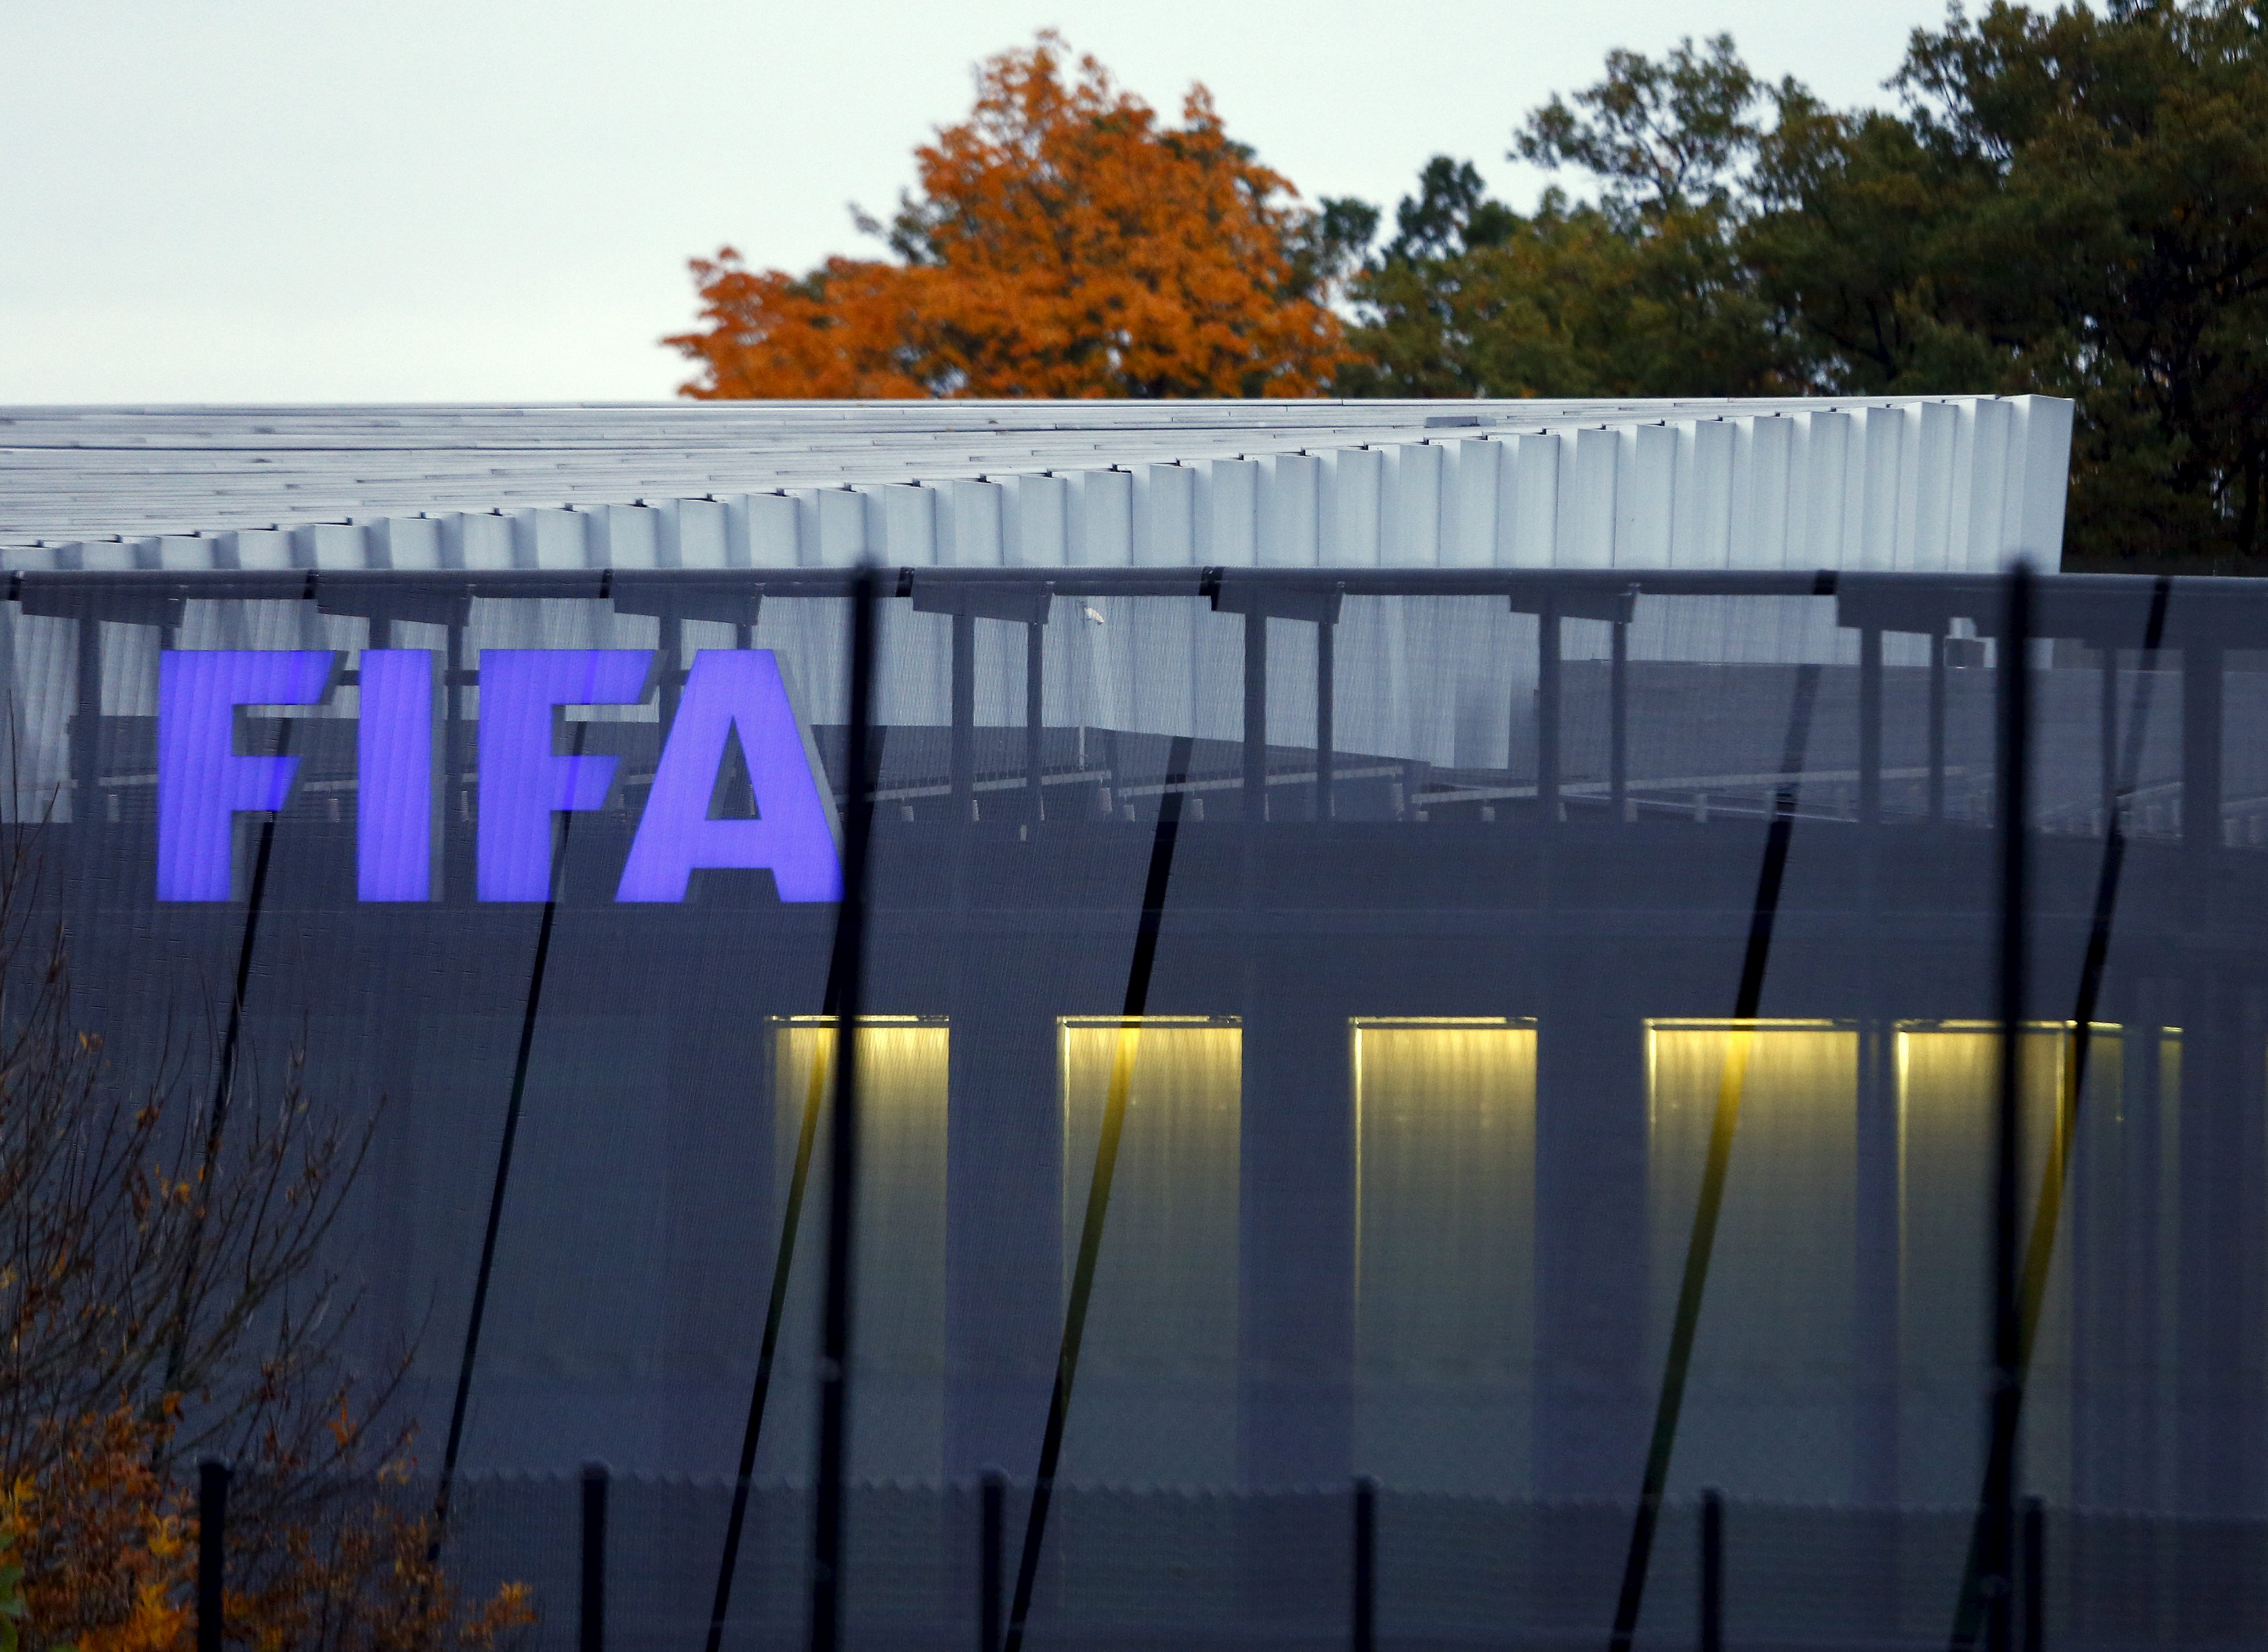 The FIFA logo is seen in the early morning at their headquarters in Zurich October 8, 2015. FIFA president Sepp Blatter faces an imminent 90-day suspension from football if the governing body's ethics judge backs a prosecutor's recommendation, a close friend and former advisor to Blatter told Reuters on October 7, 2015. REUTERS/Arnd Wiegmann